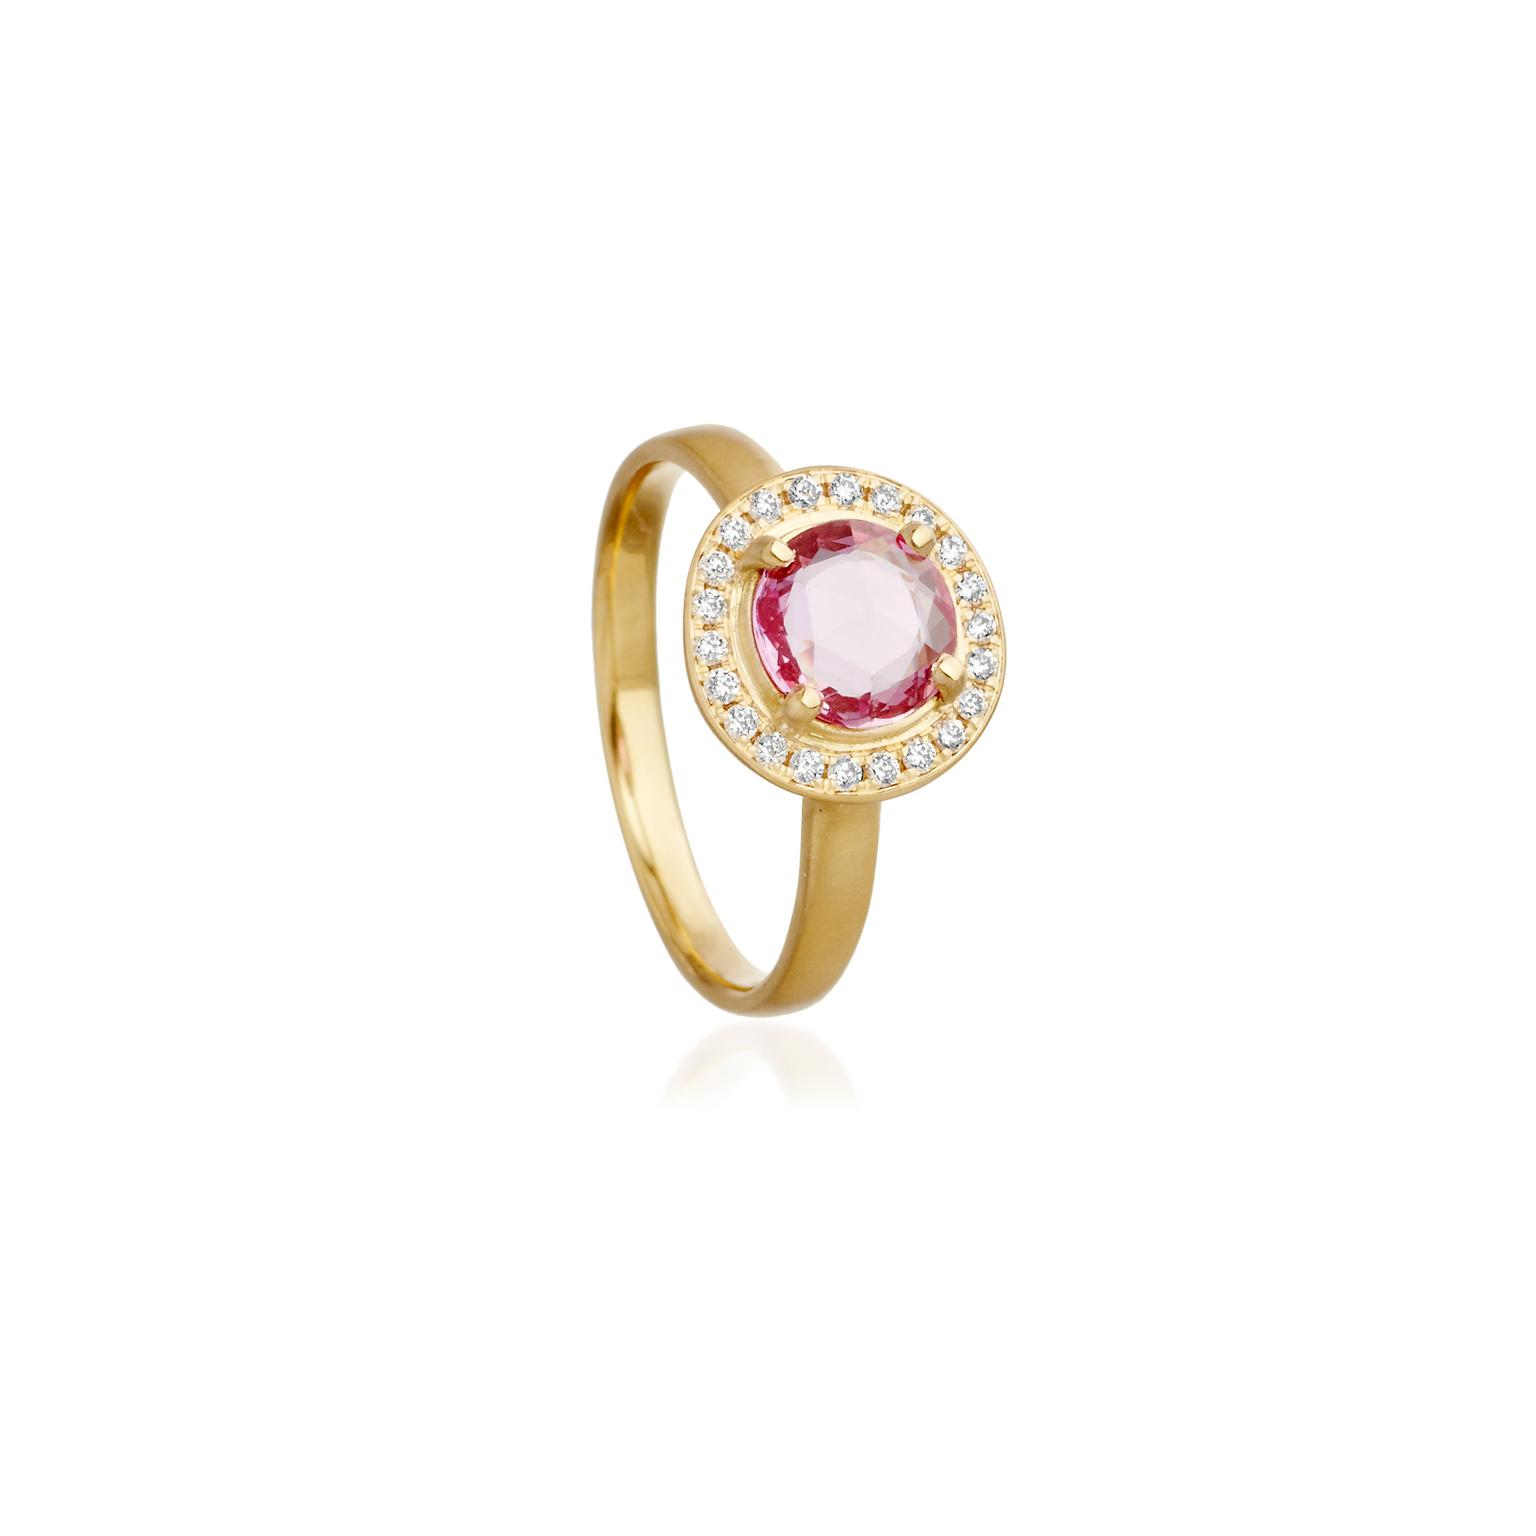 september wedding gold sku rings shipping birthstone rose ring calculated checkout set eternity pink at full sapphire band bezel